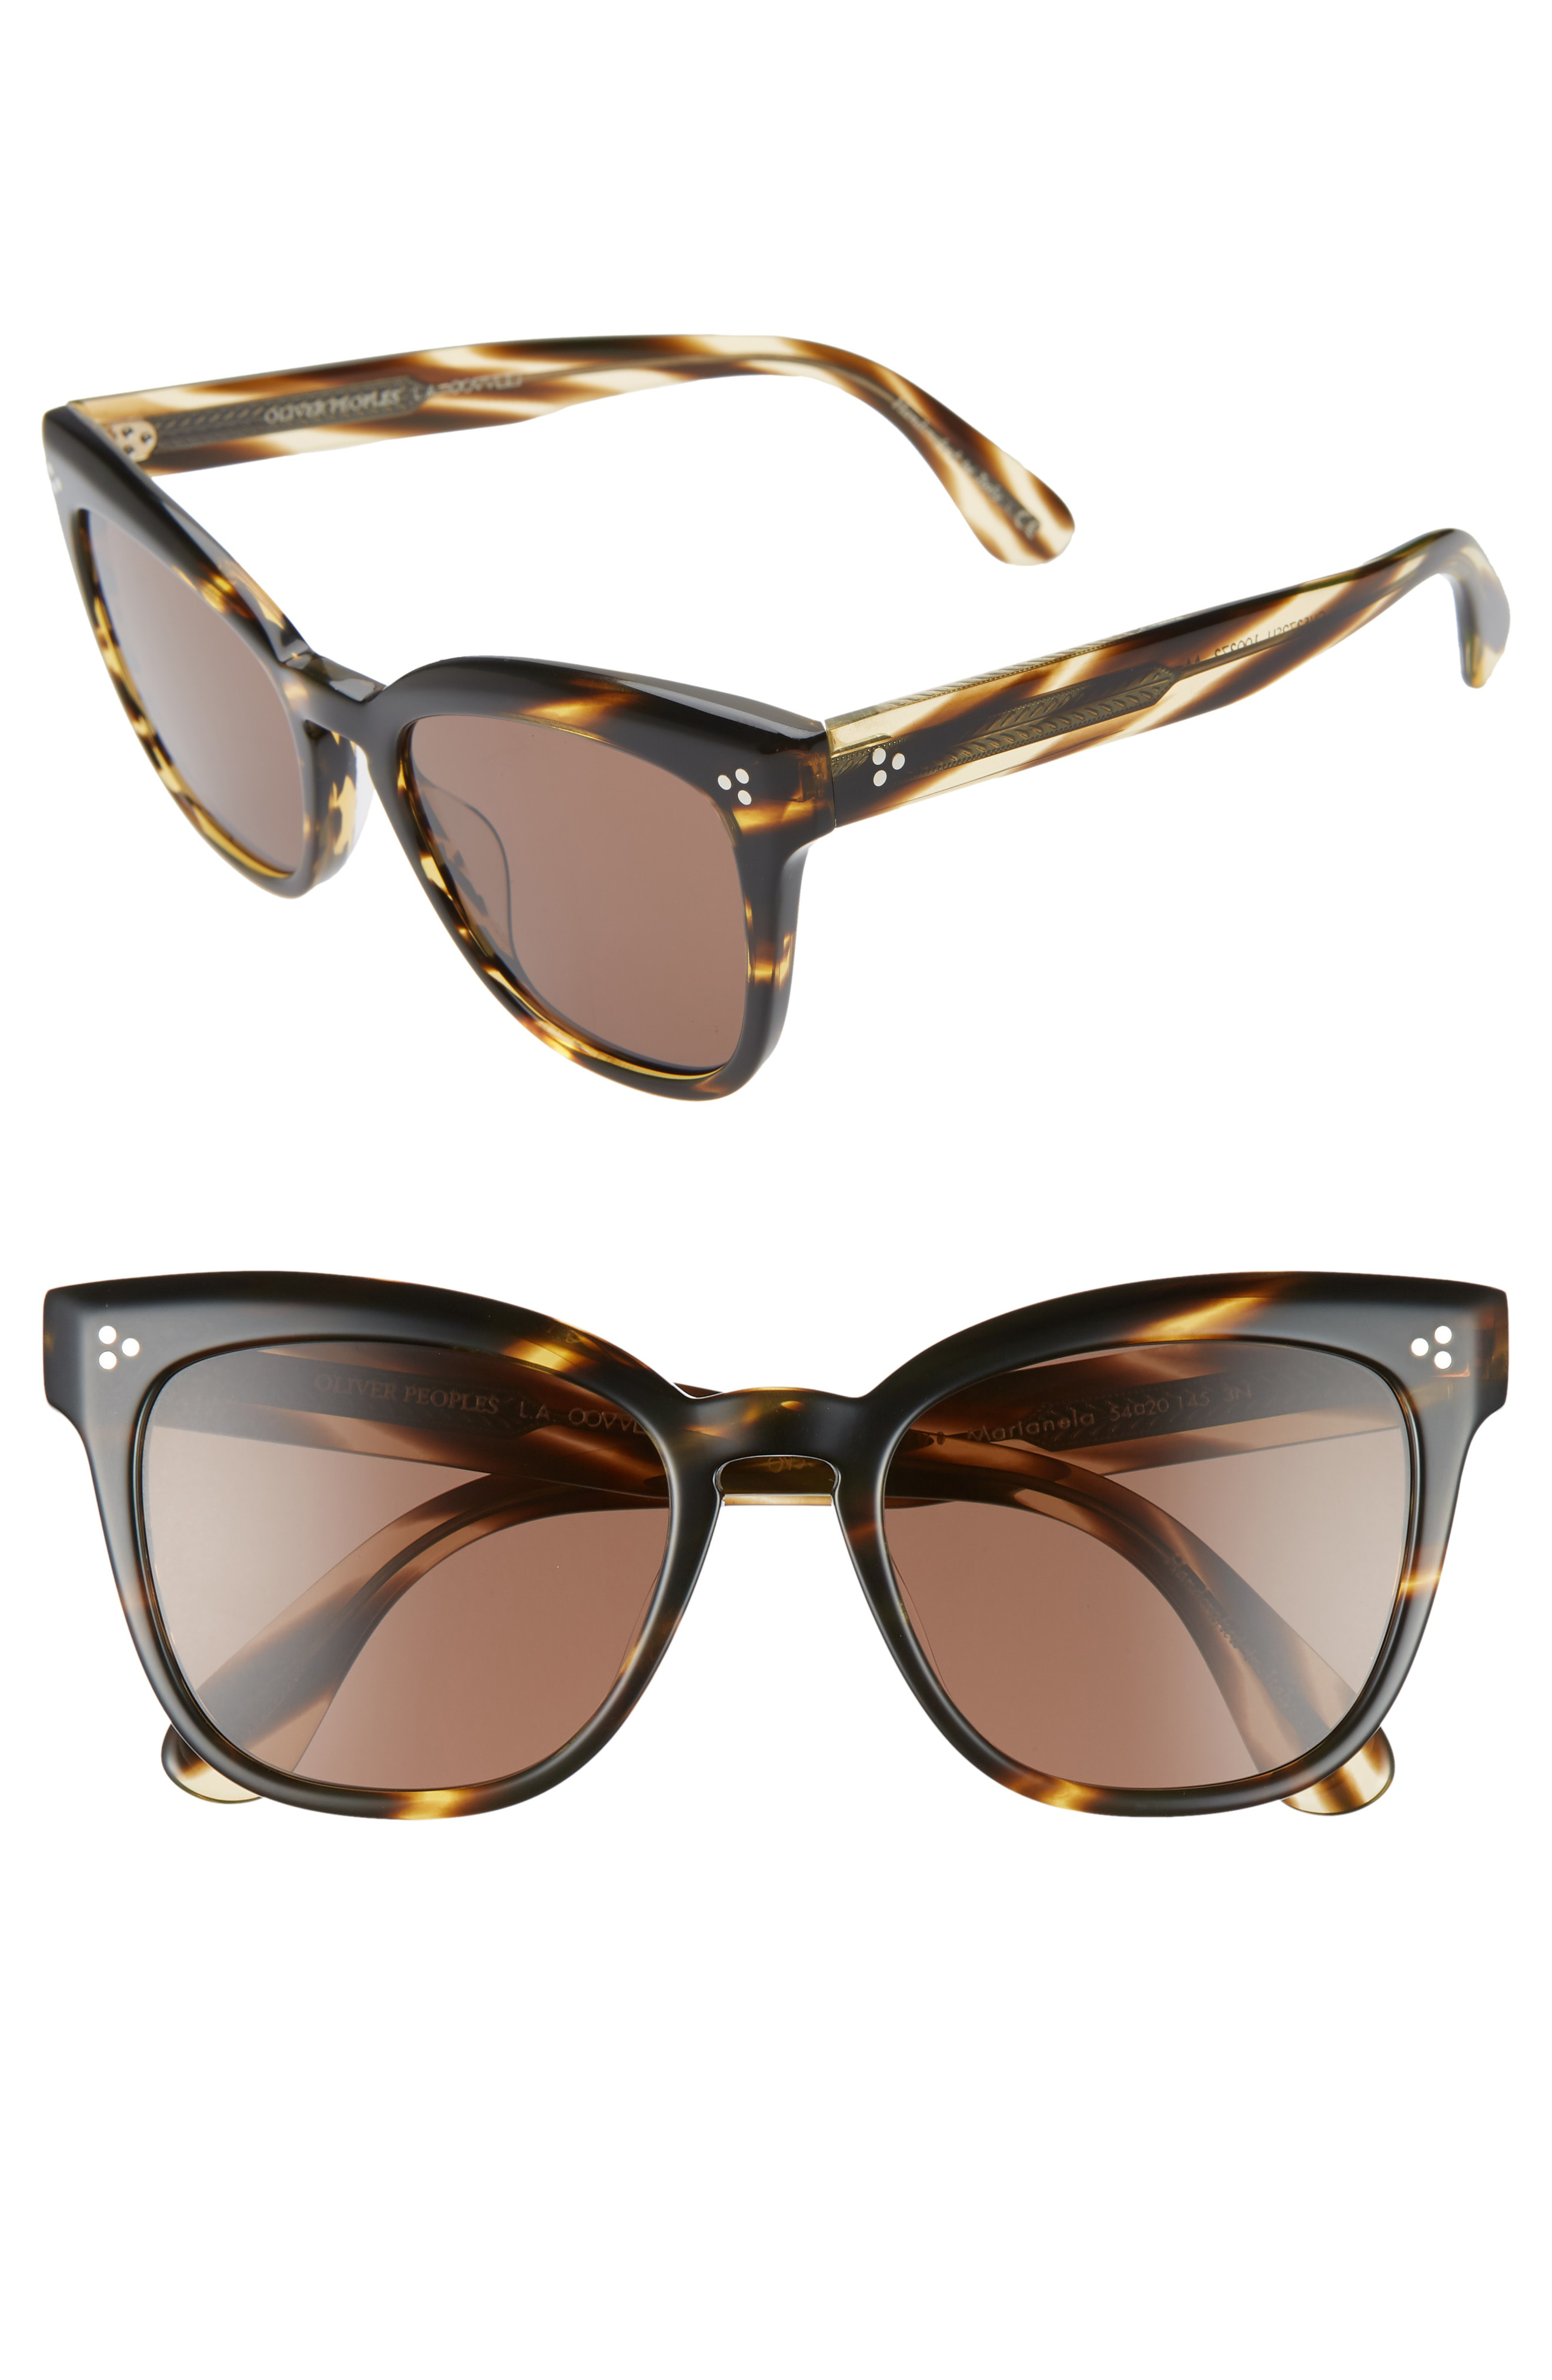 c129d9b7d1 Oliver Peoples Marianela Rounded Acetate Butterfly Sunglasses In Havana    Dark Brown